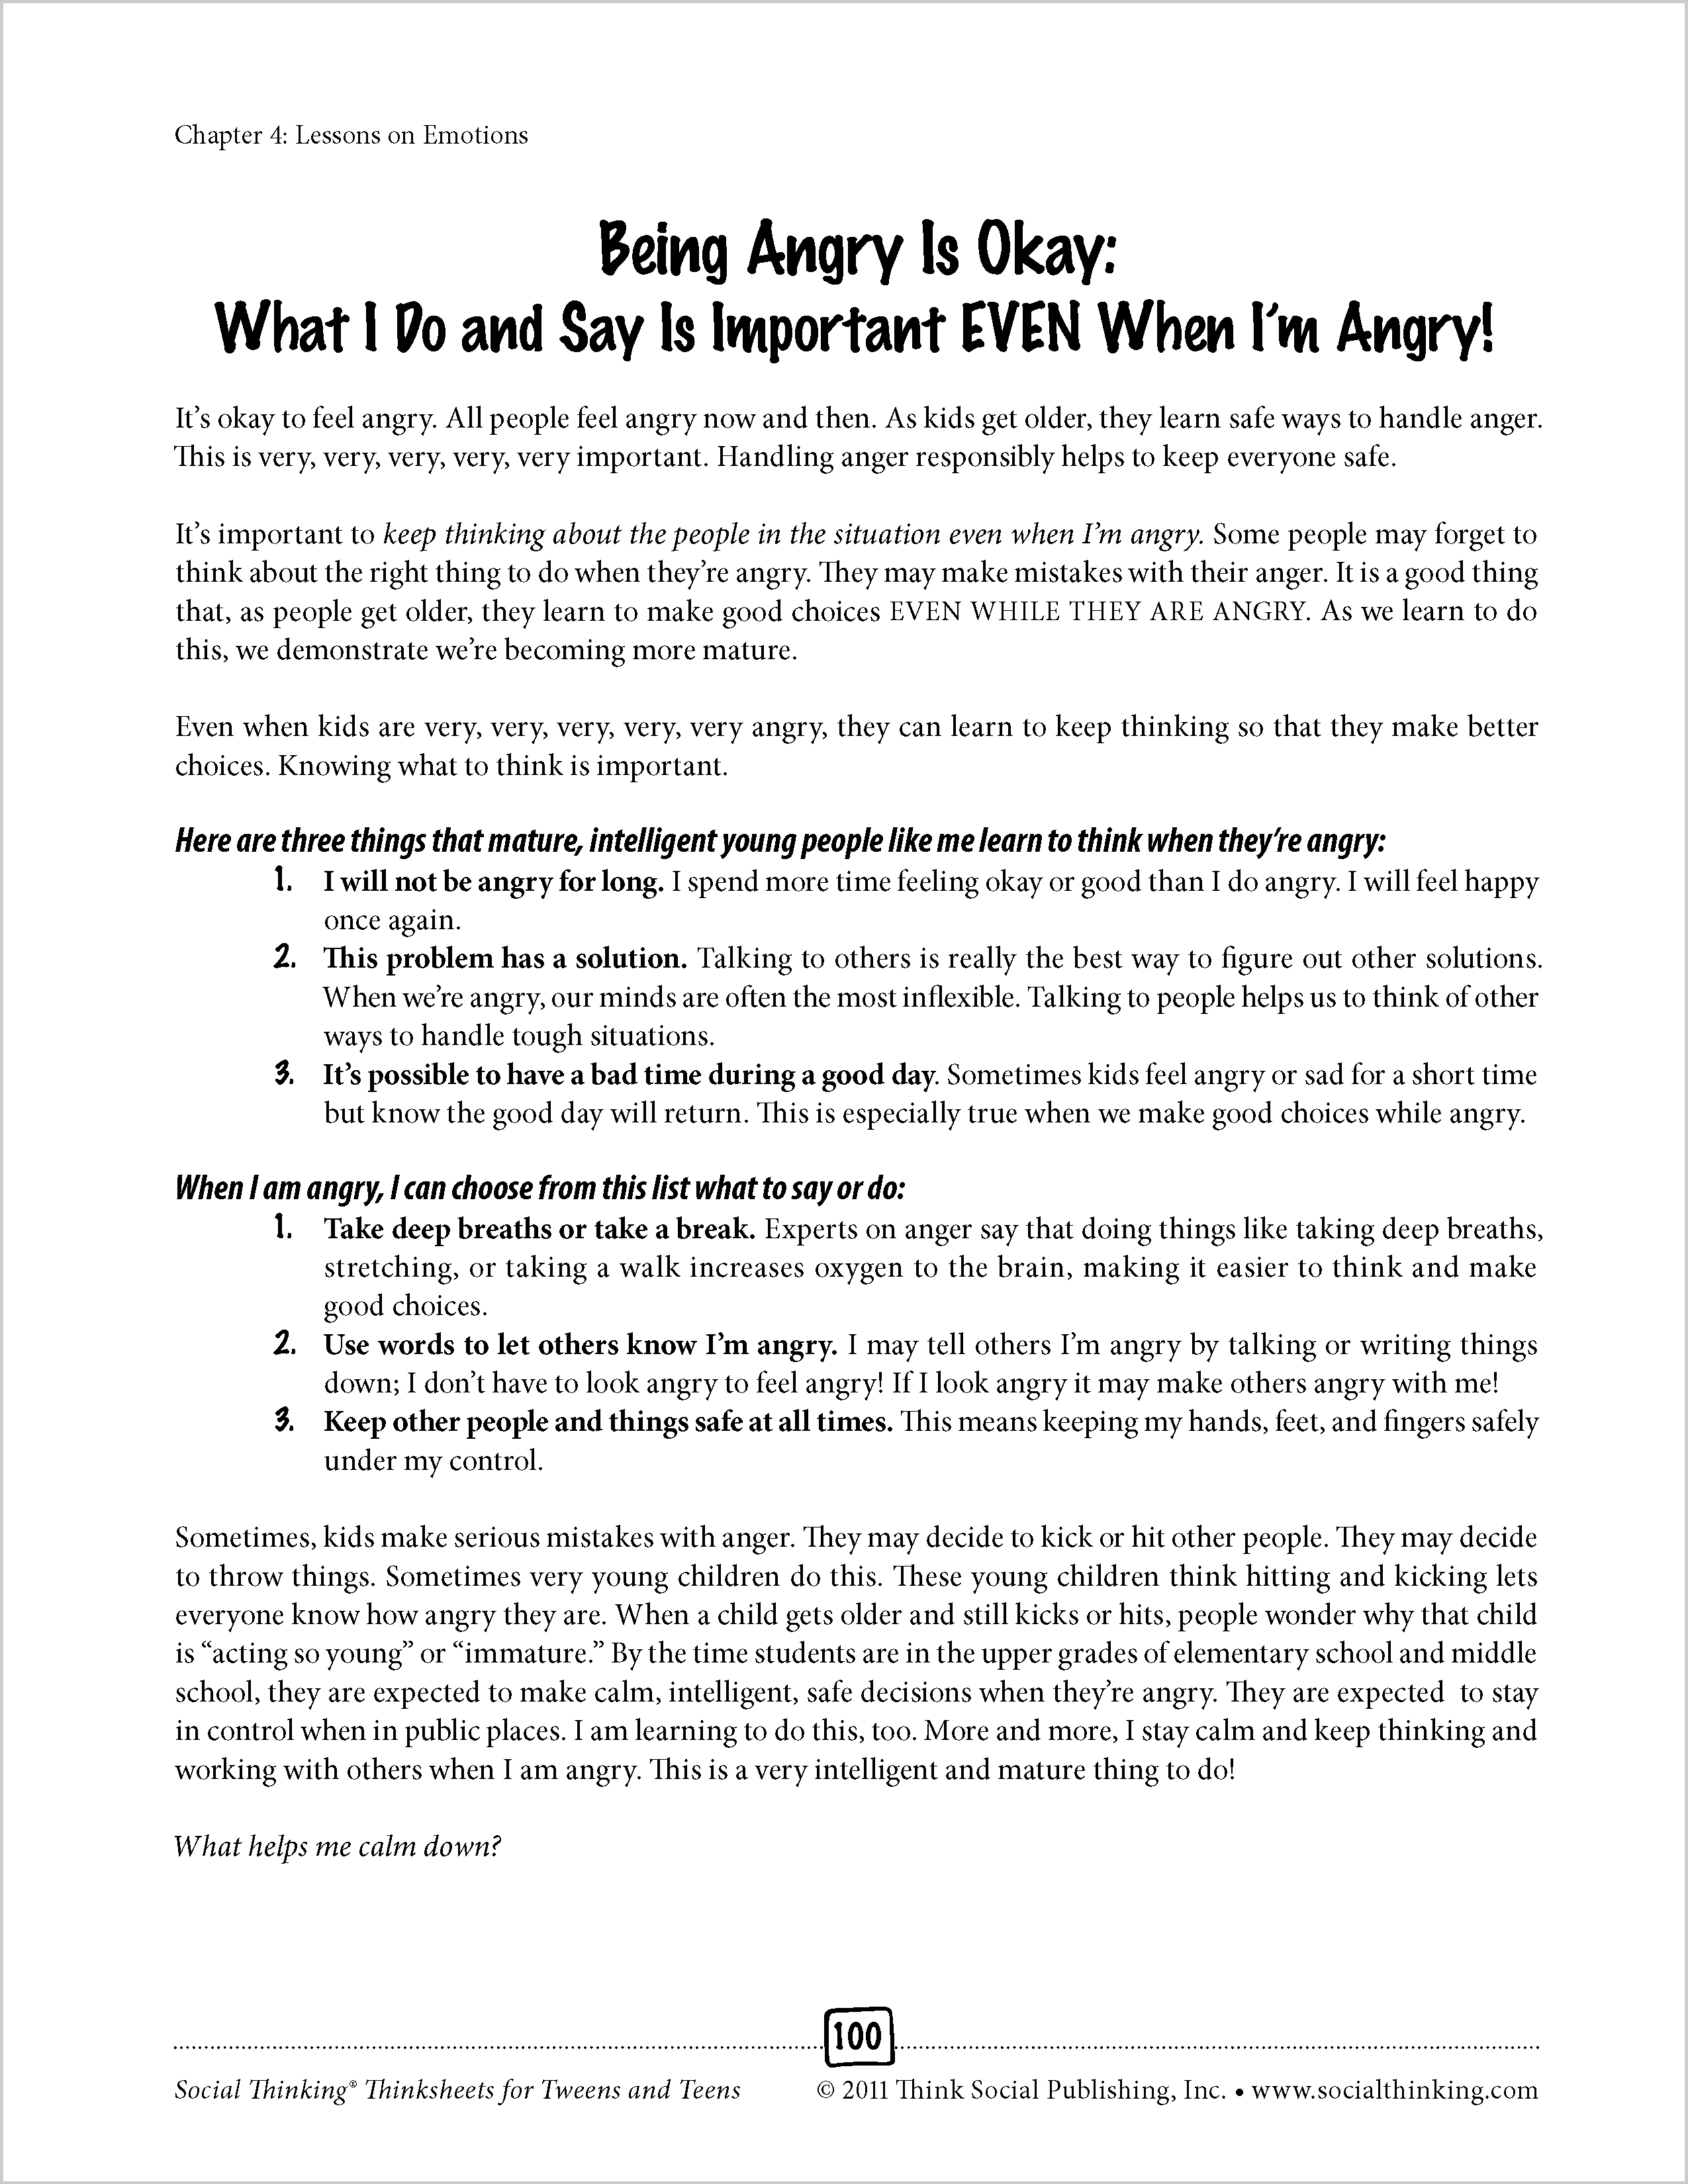 Printables Social Thinking Worksheets socialthinking social thinking thinksheets for tweens and teens click here to see table of contents one our more popular books worksheets